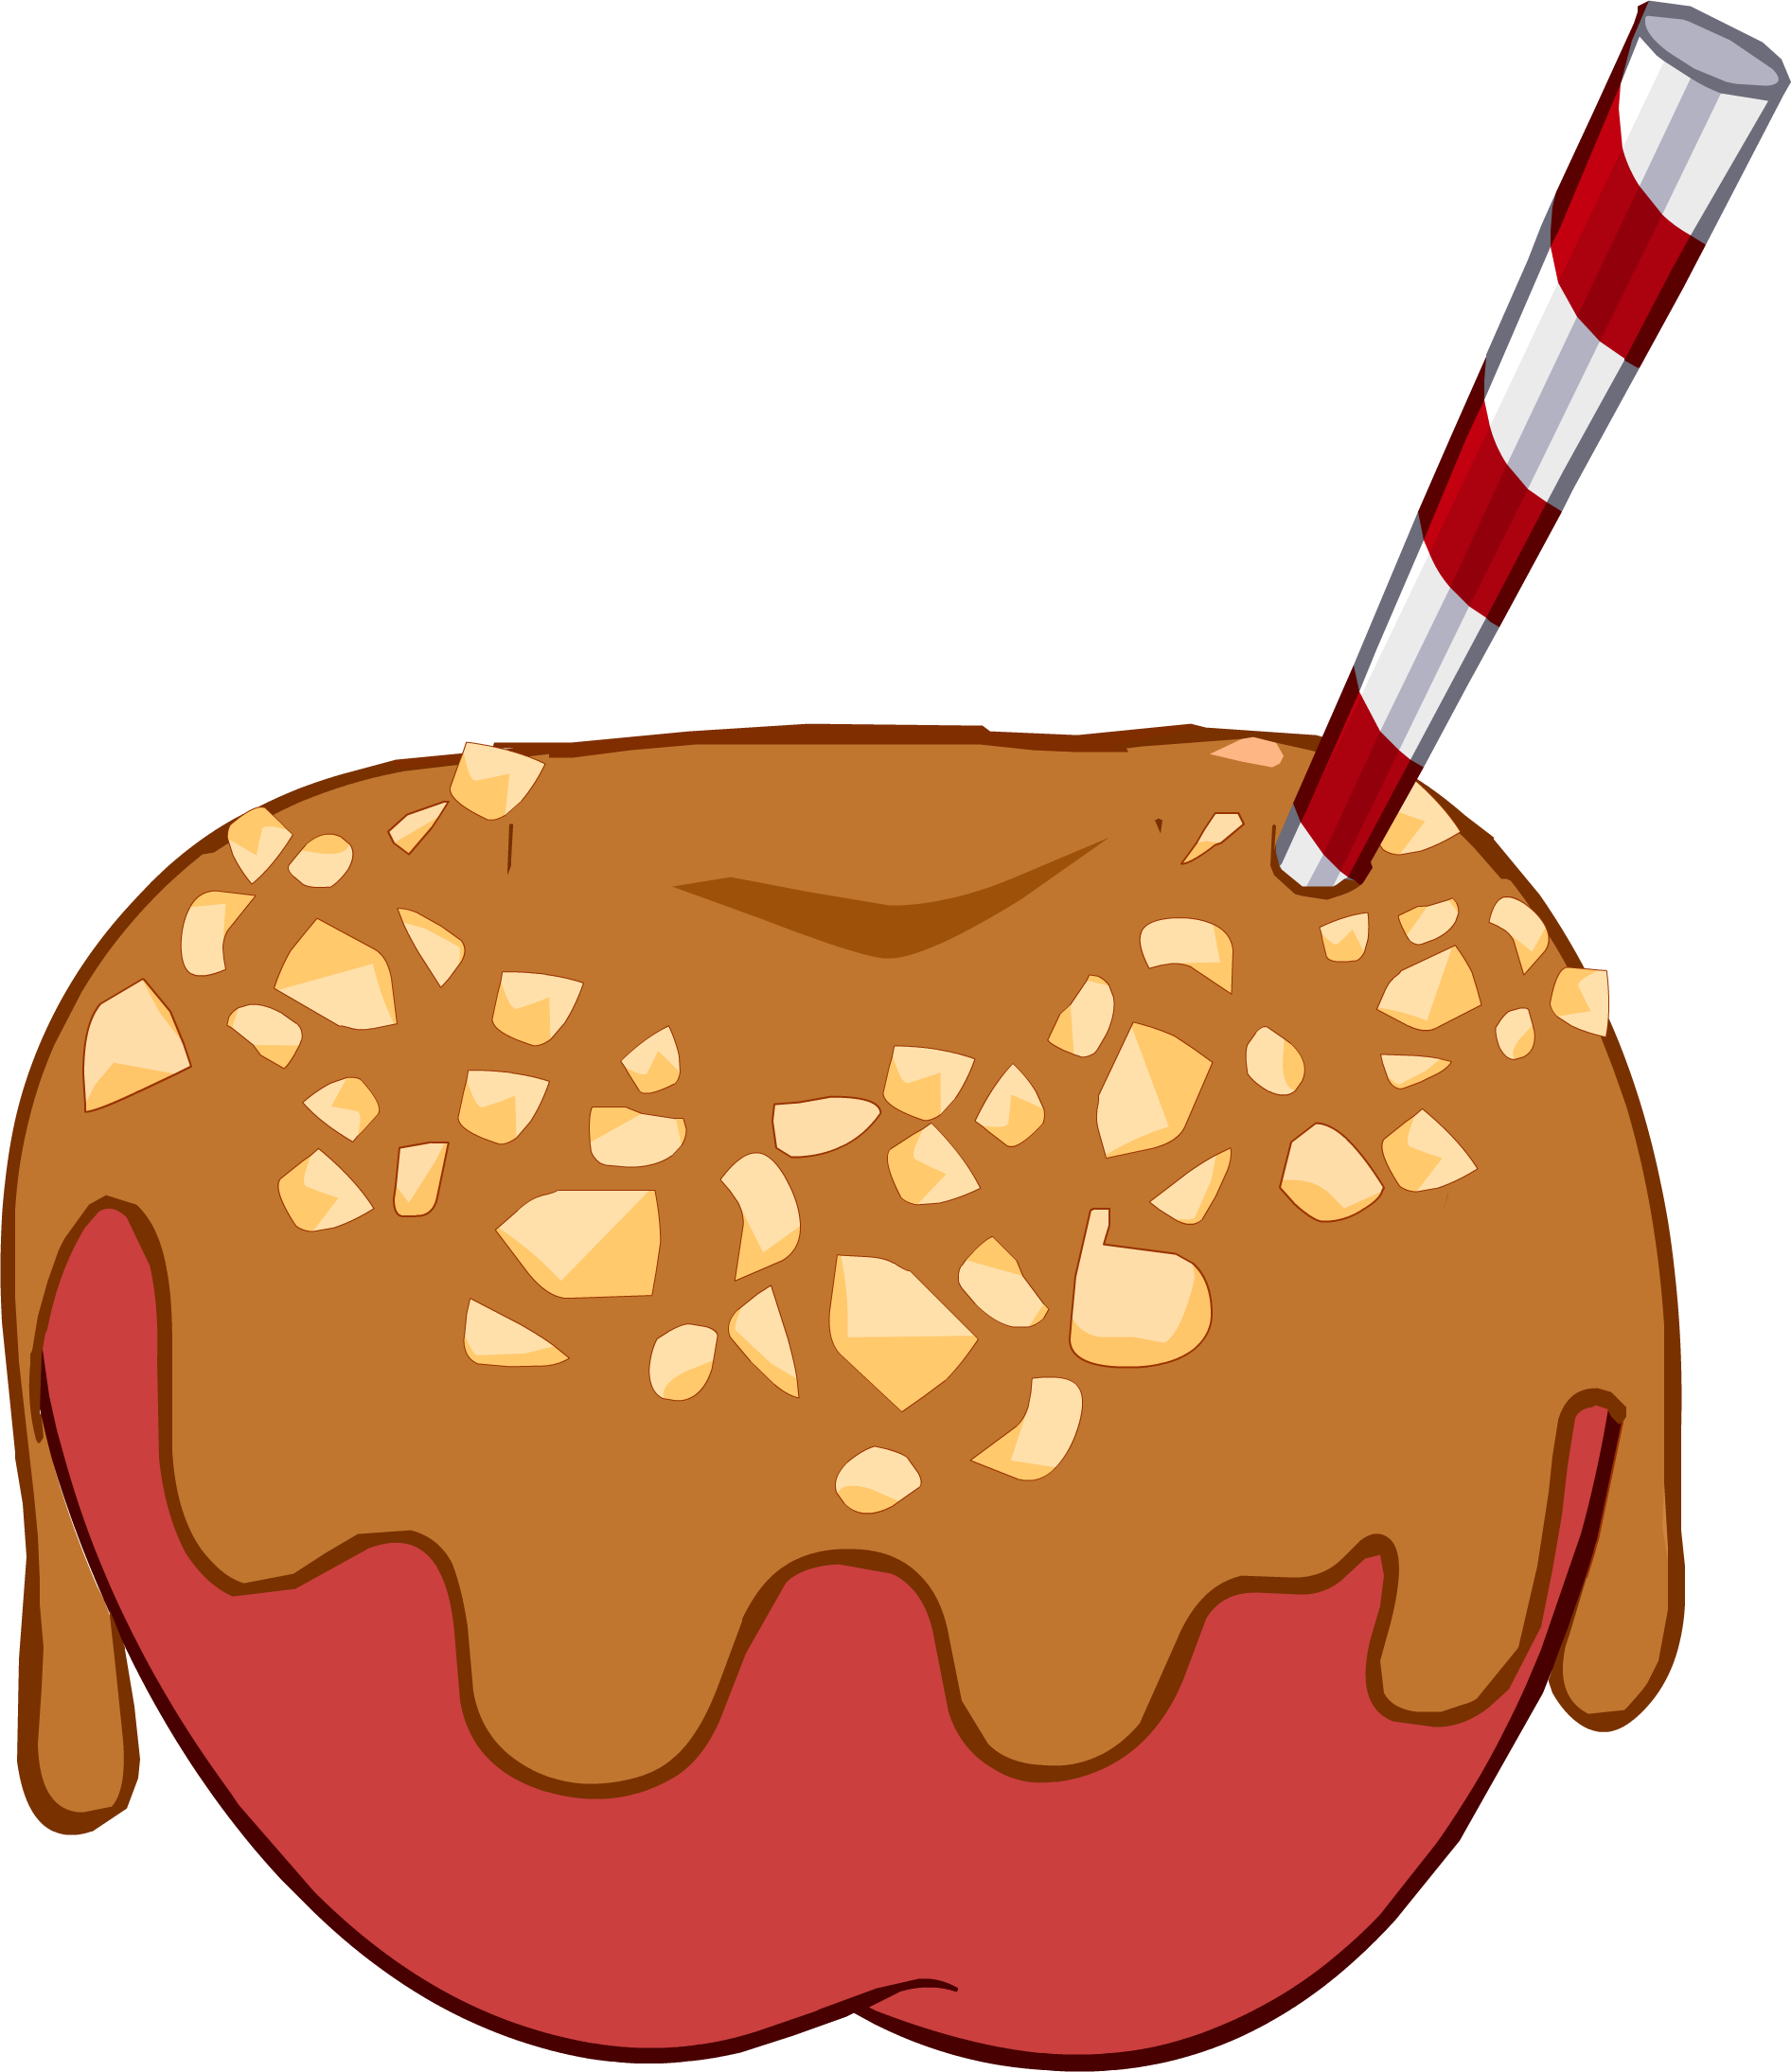 Carmel apple clipart graphic library stock Caramel Apple Clipart | Free download best Caramel Apple Clipart on ... graphic library stock